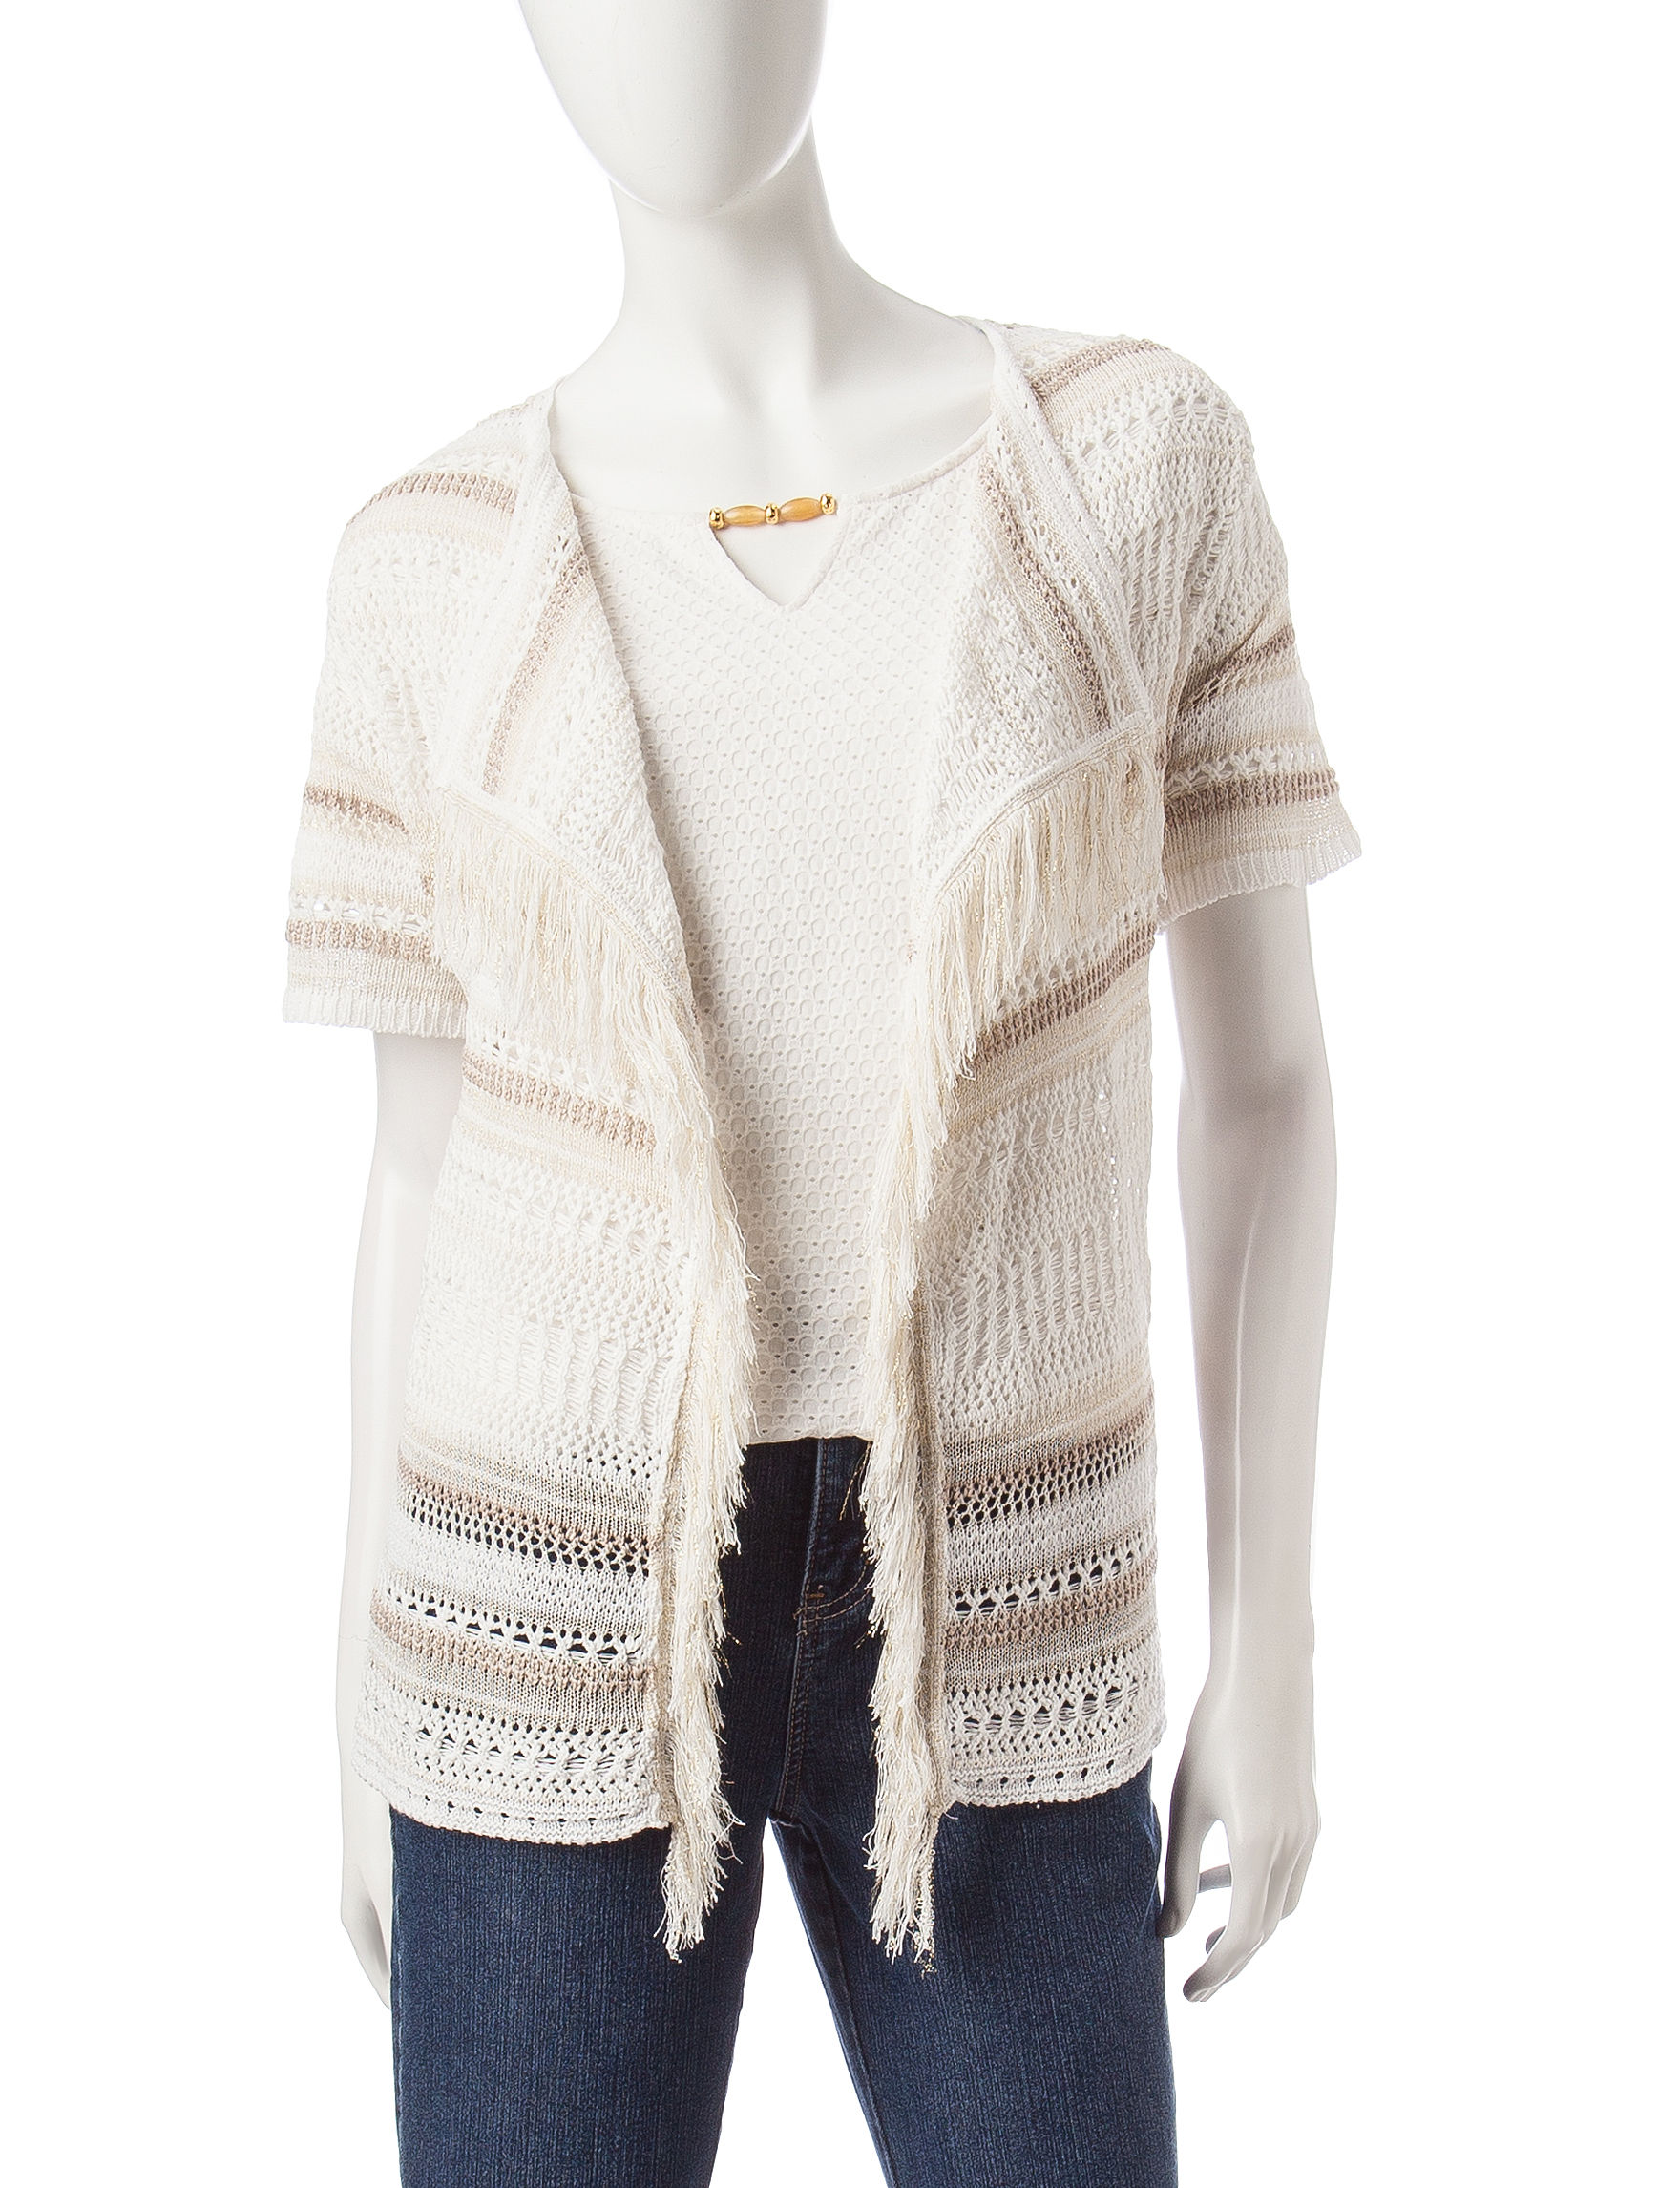 Hearts of Palm White Cardigans Sweaters